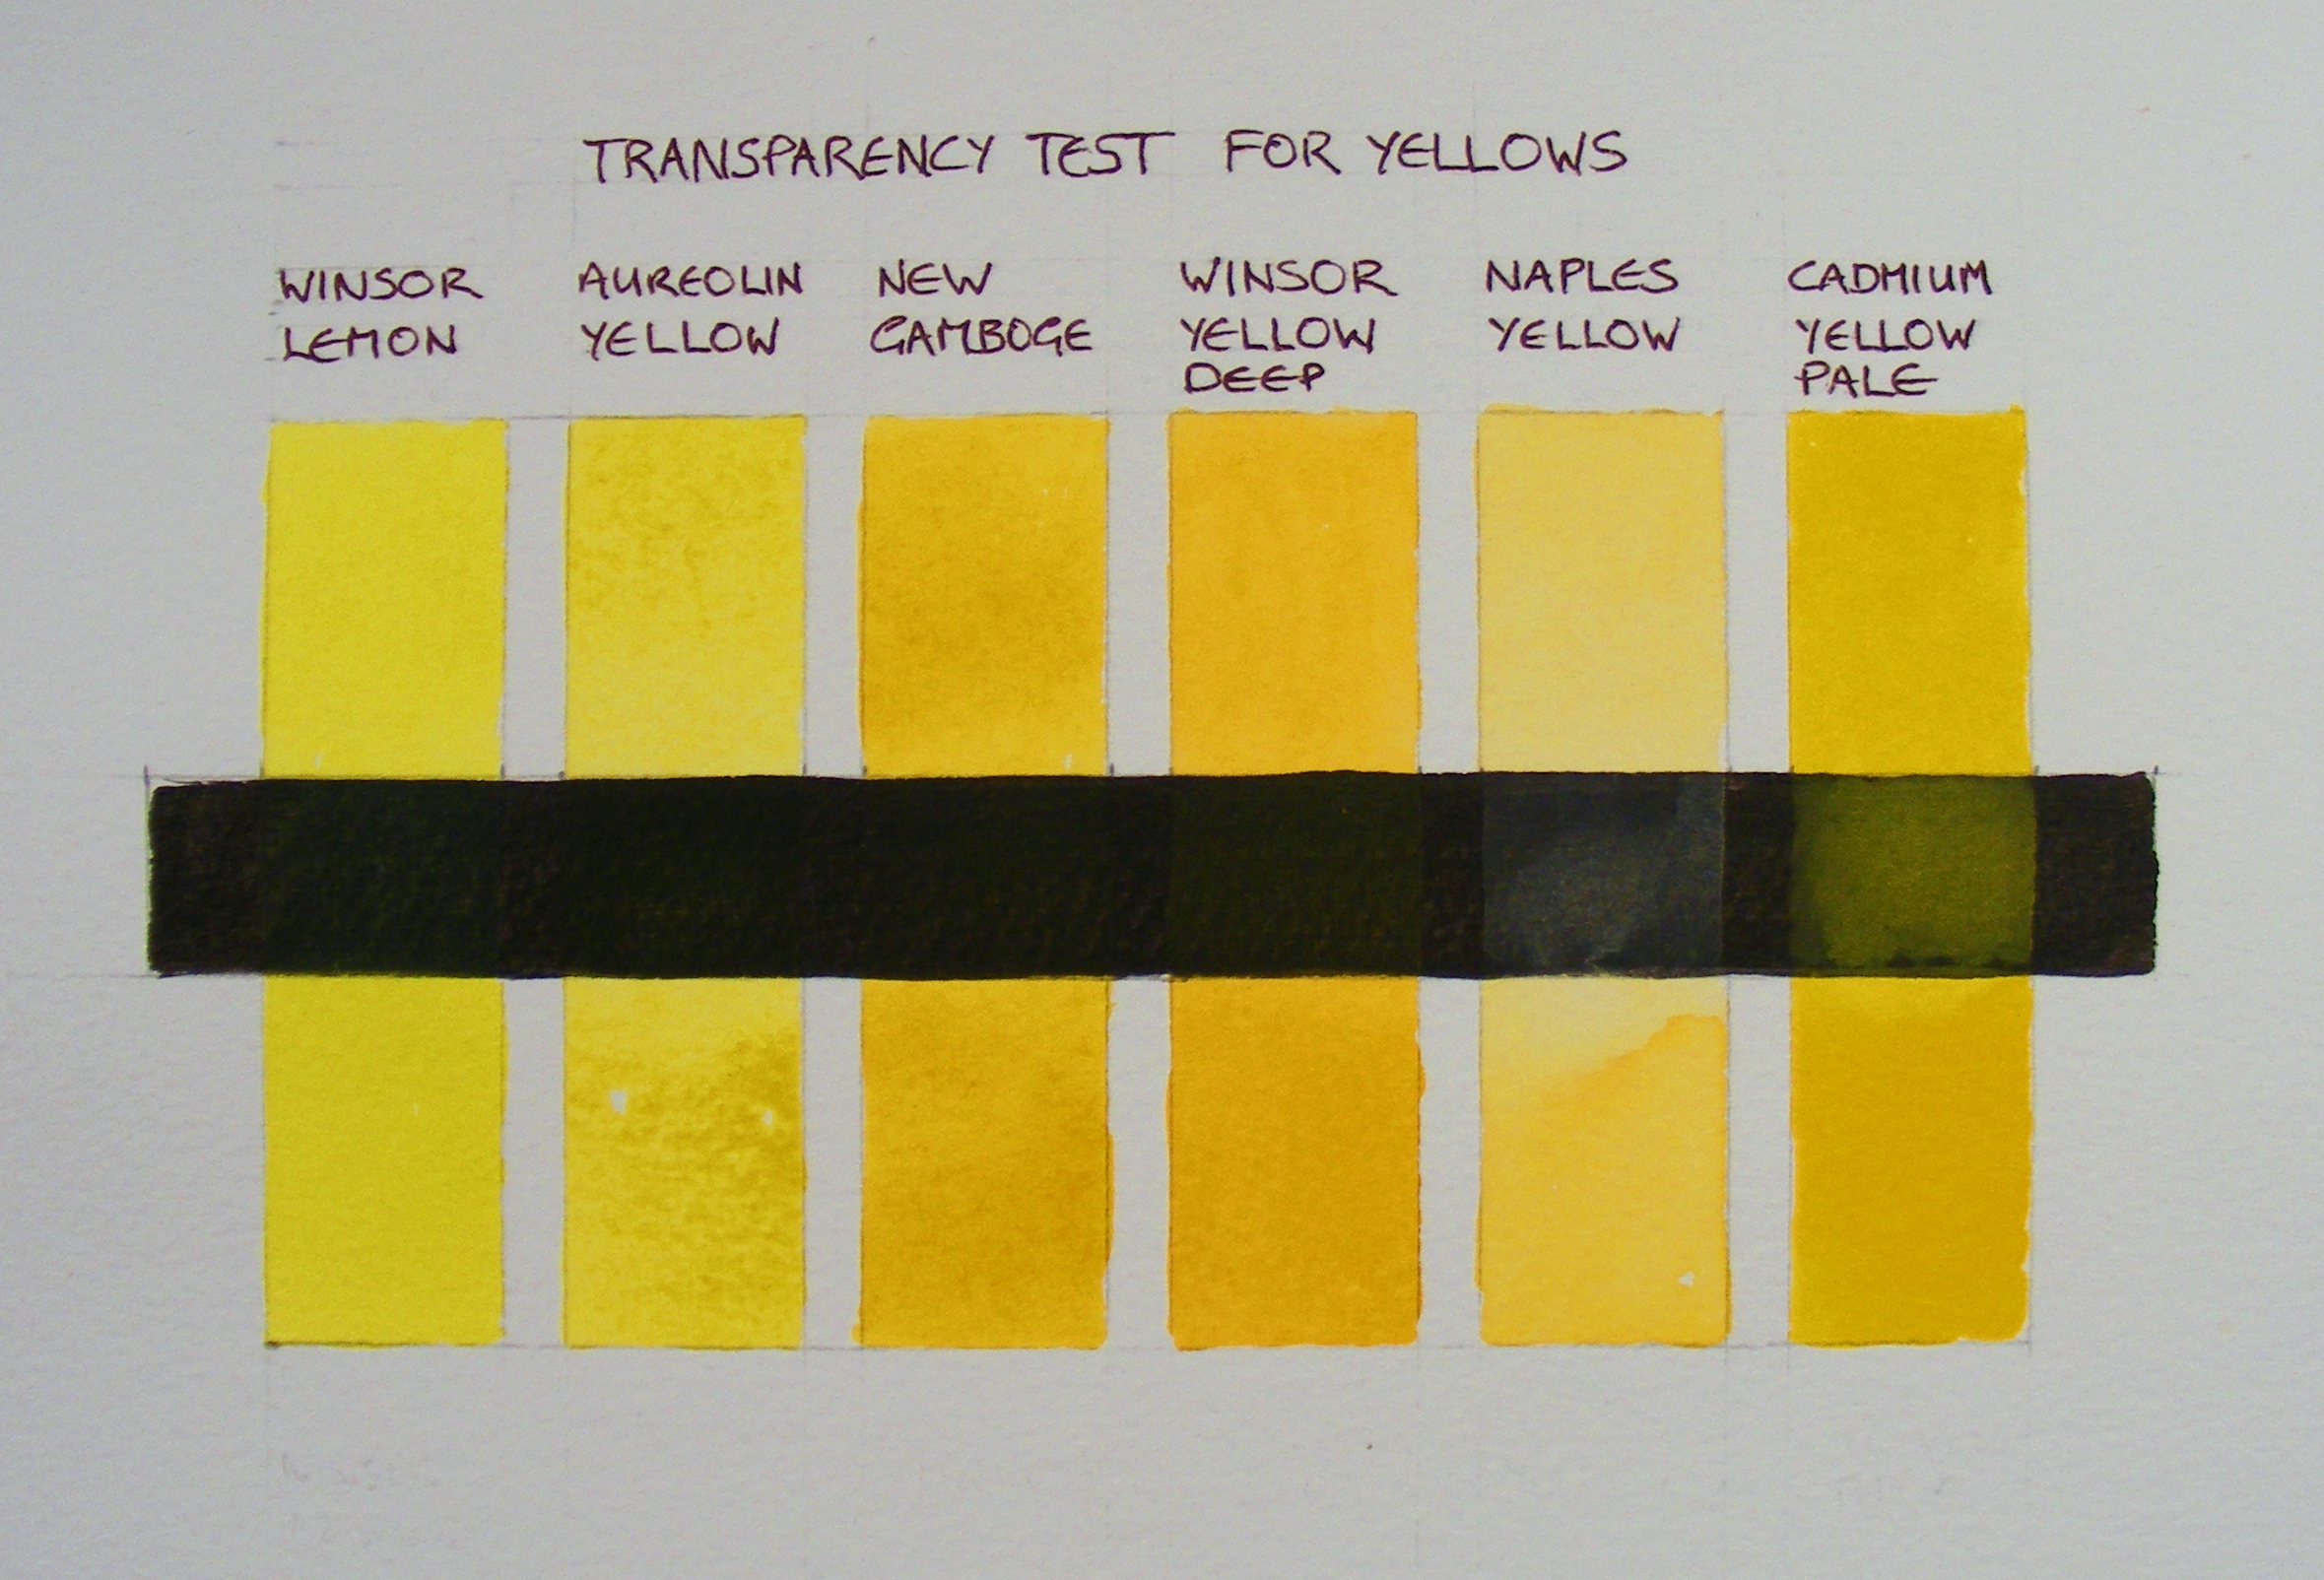 Transparency Test for Yellows.JPG